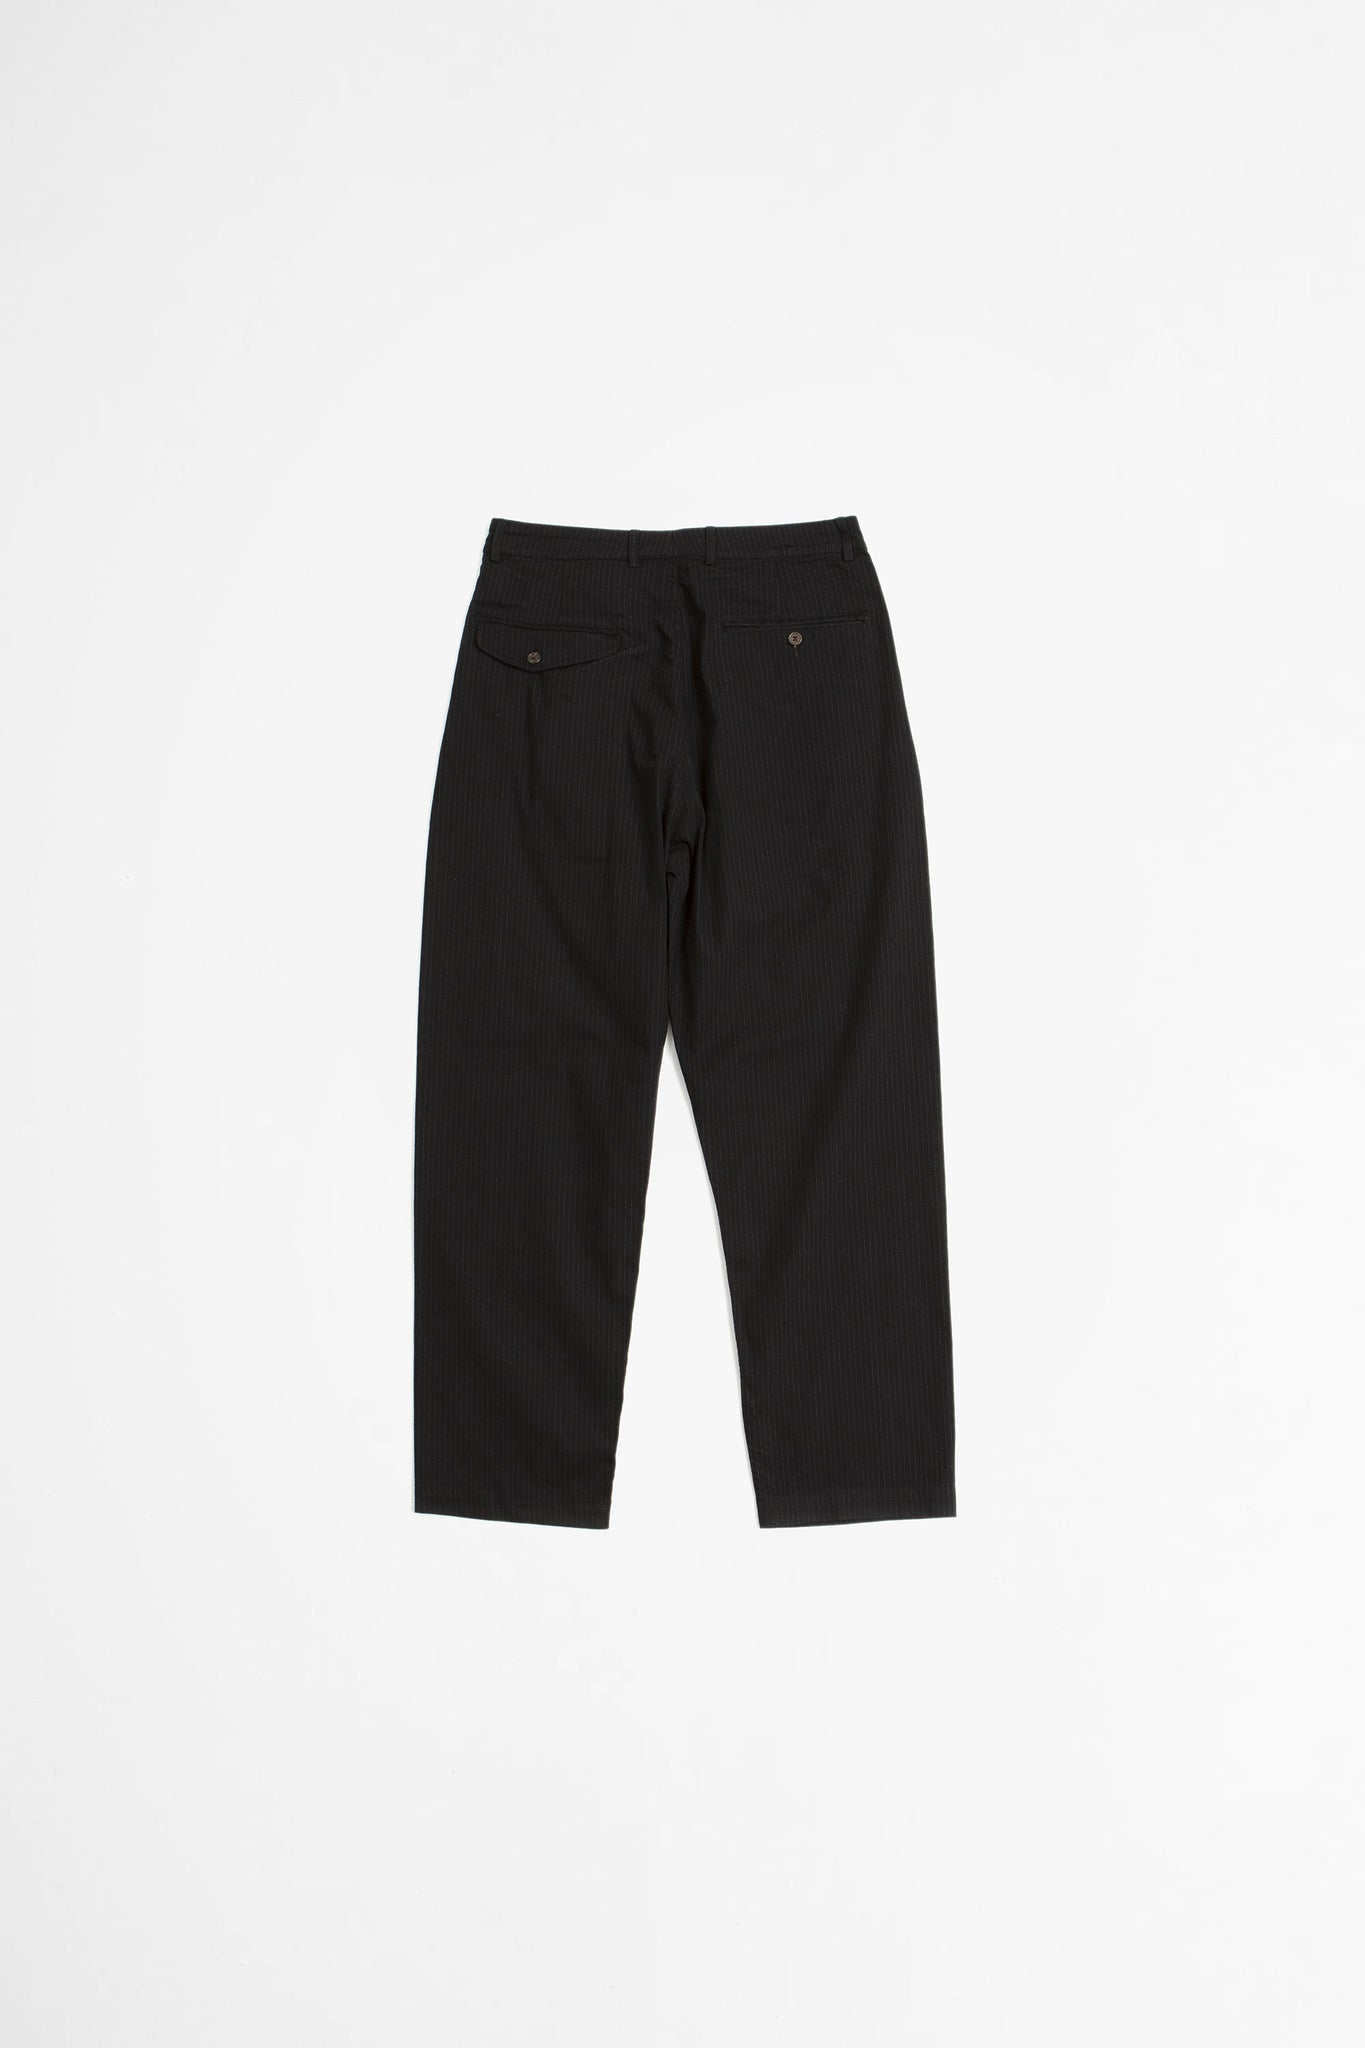 Double pleat pant cotton/nylon pinstripe black